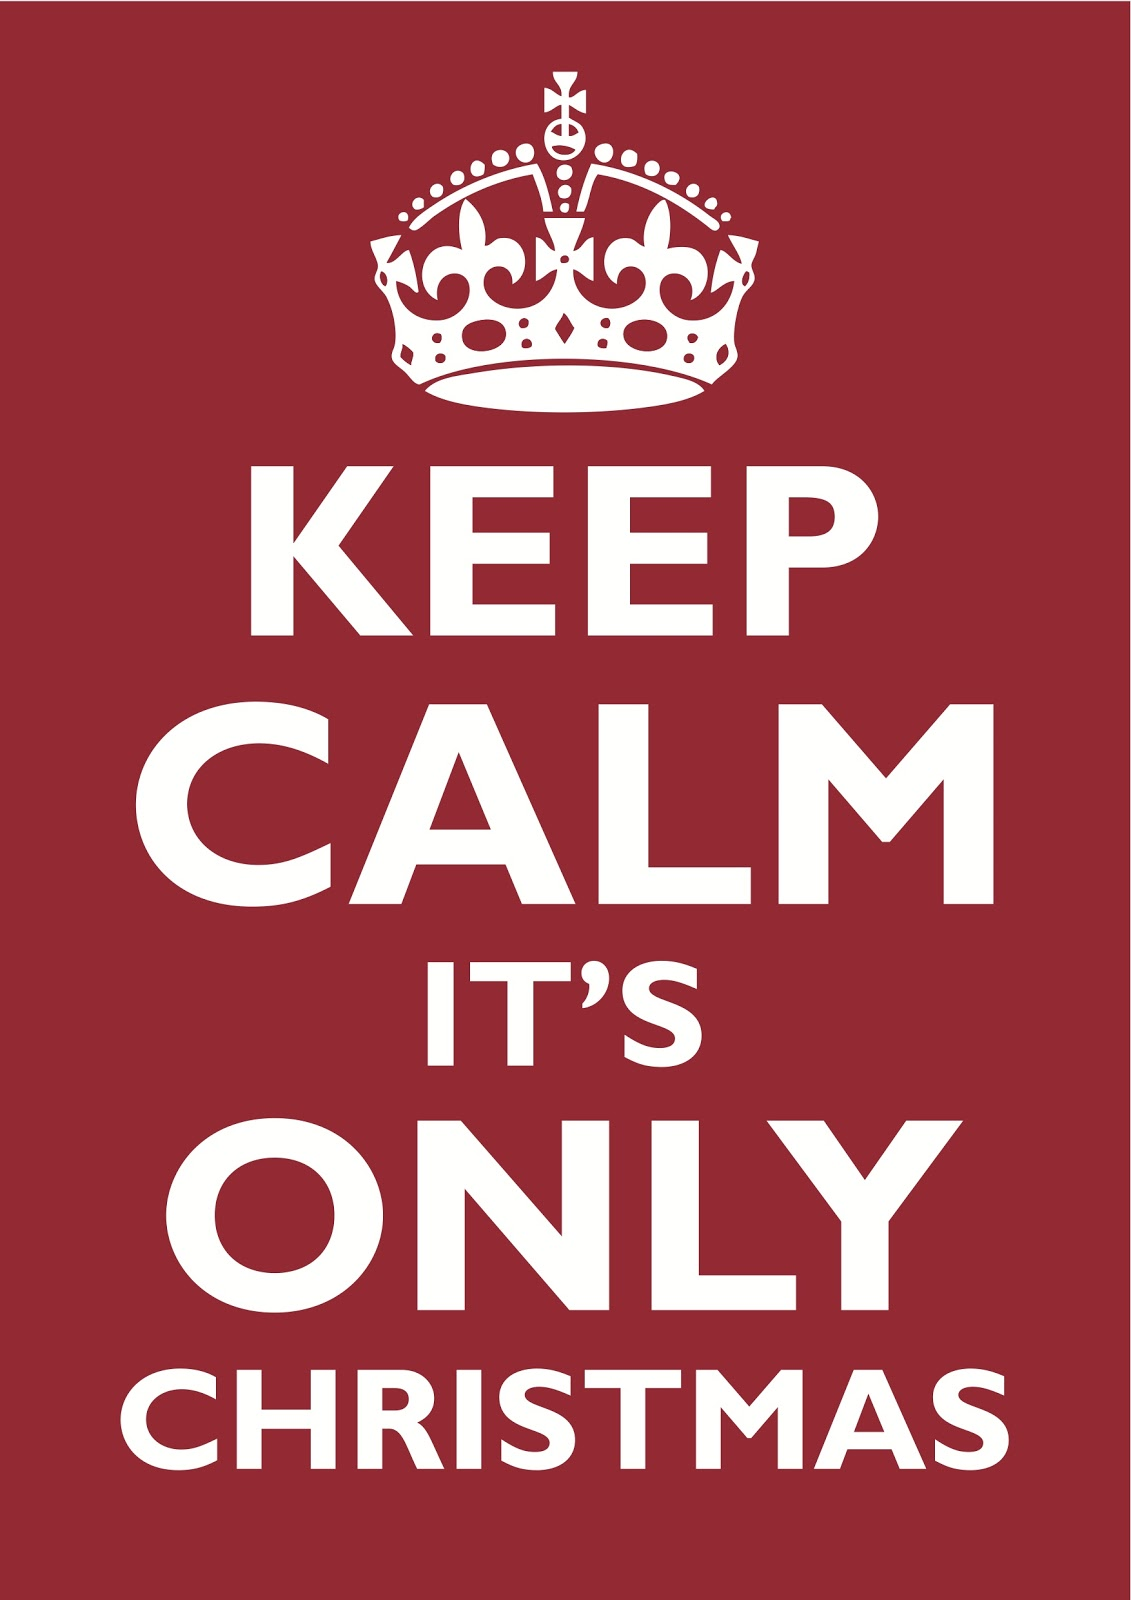 Keep Calm Its Only Christmas Poster